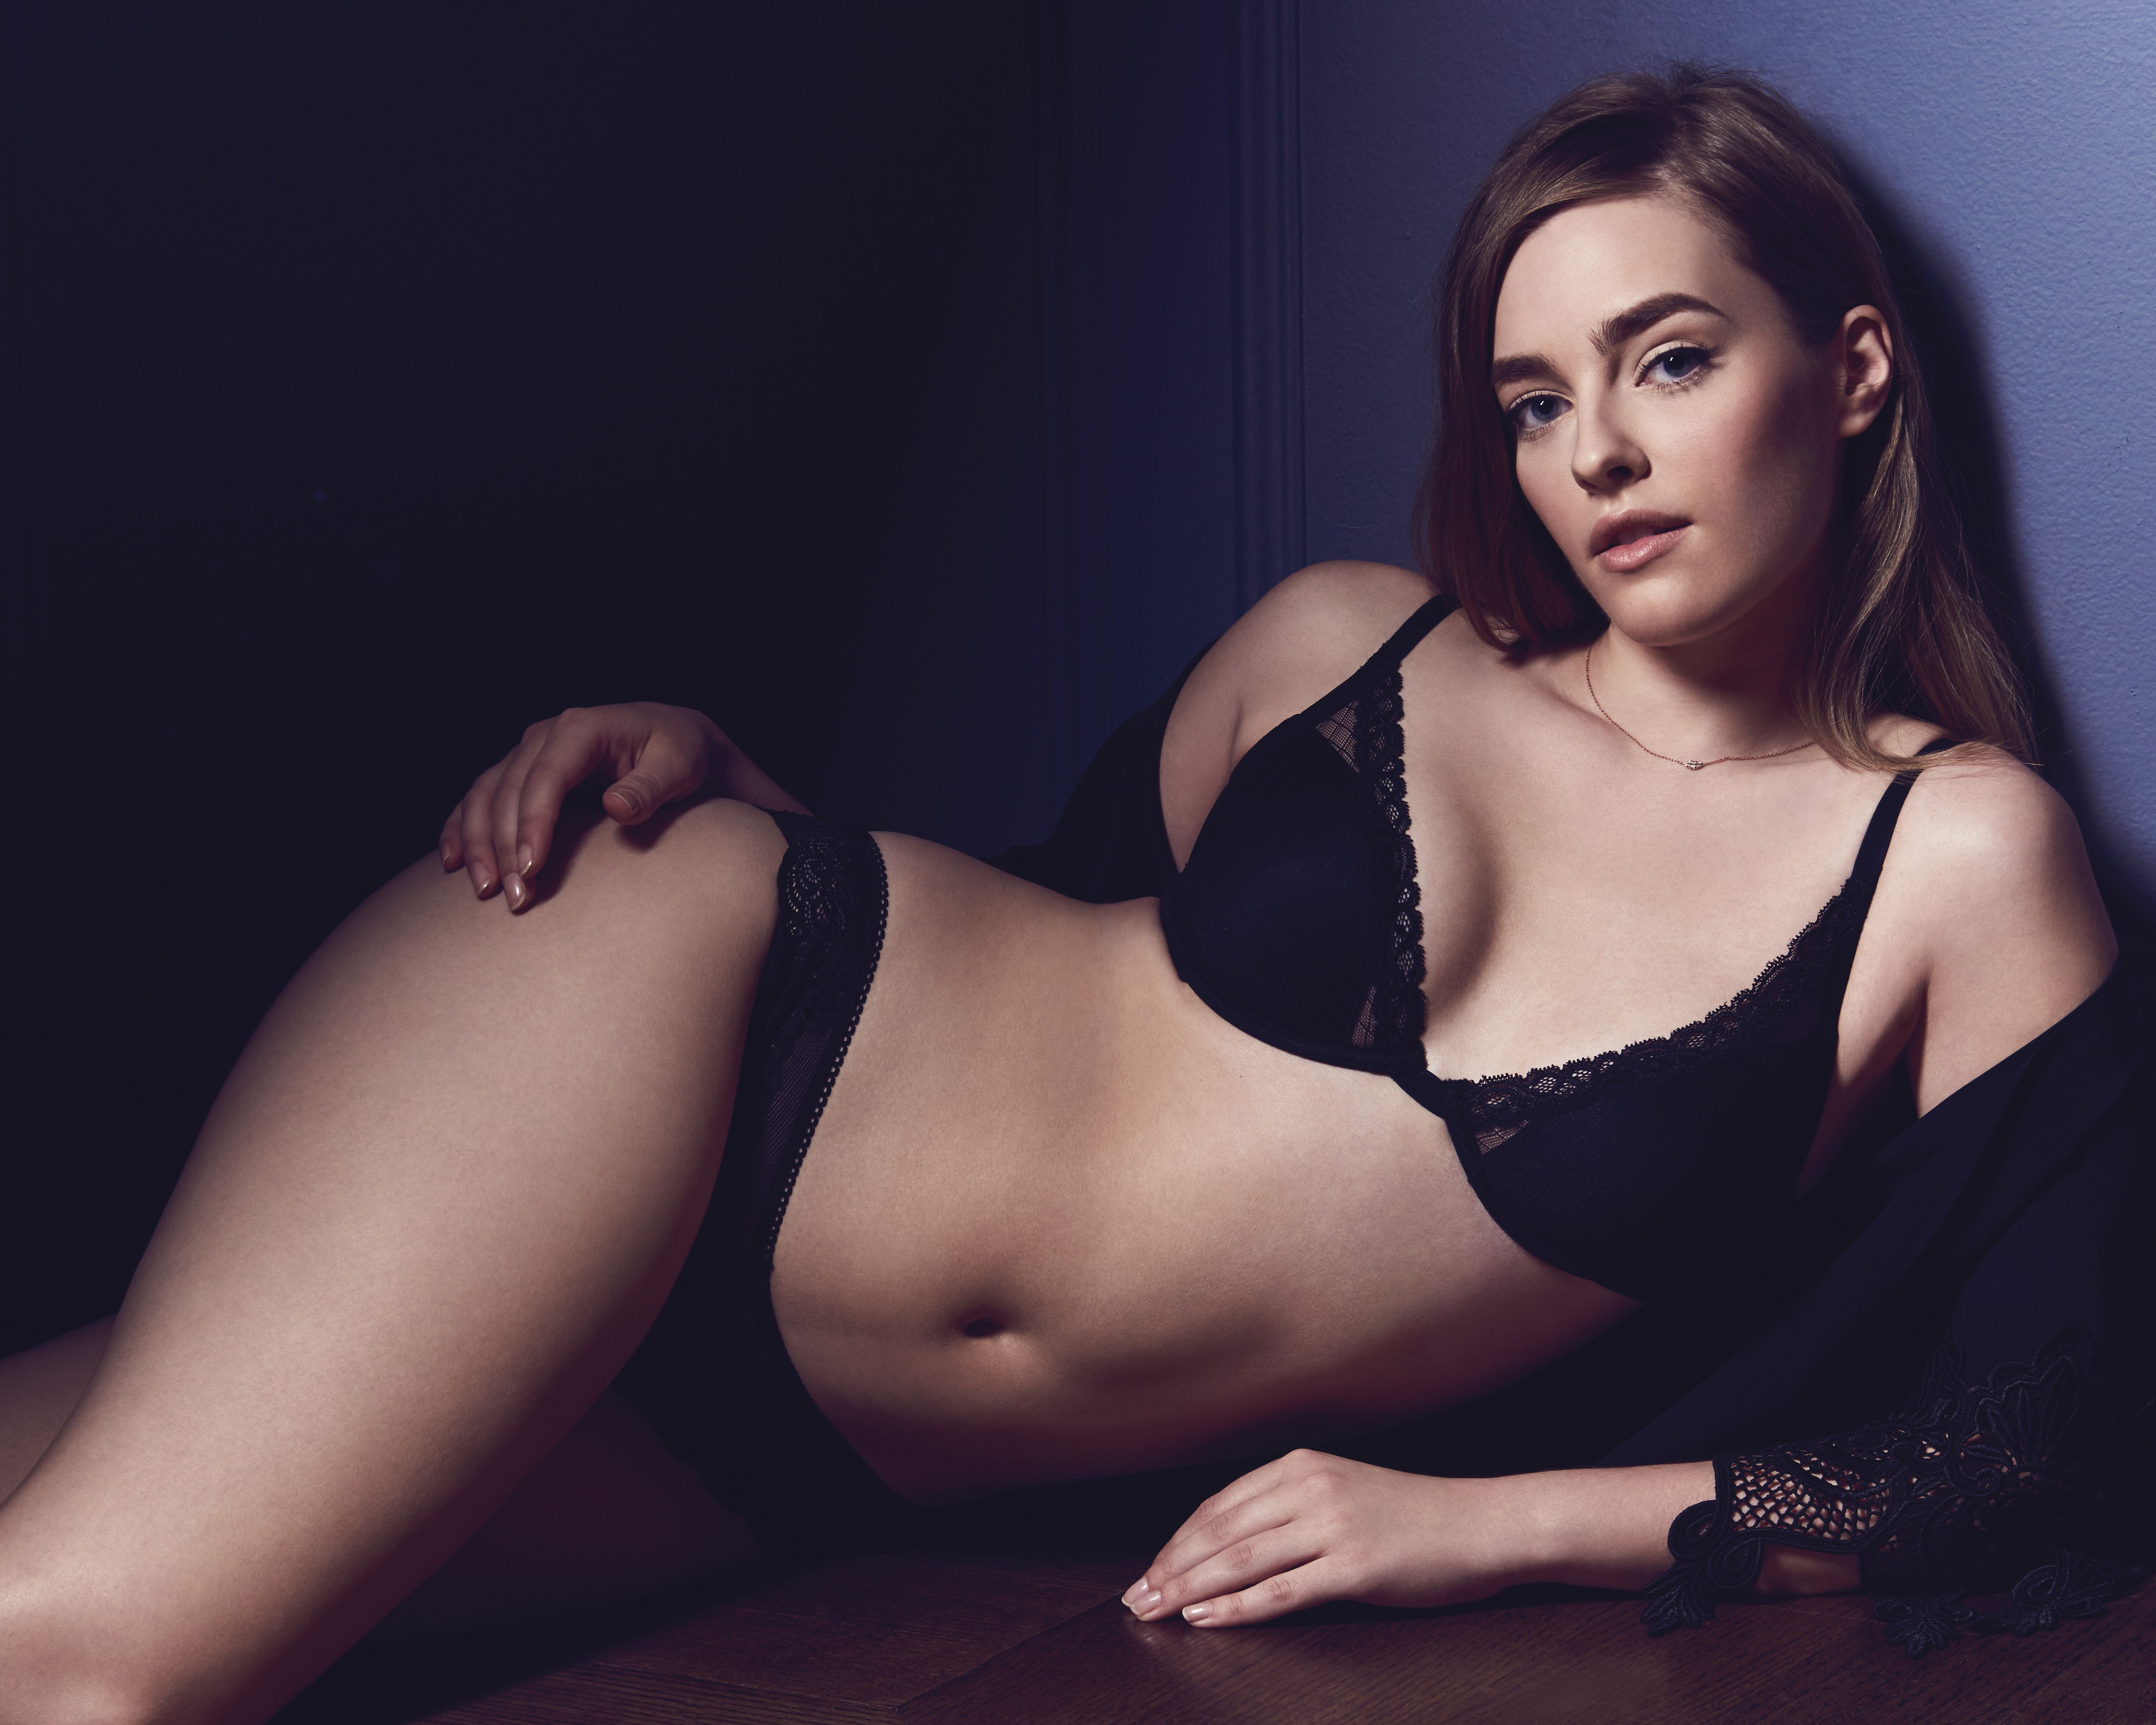 Shyaway Top Lingerie Online Shopping in India – Say YES to Intimate Wear Shyaway is the leading and fastest growing lingerie and nightwear online store in India known for being a pioneer in lingerie items like Bra, Panty, Nightwear, Babydoll, Shapewear and Swimwear catering to everything a lady needs.